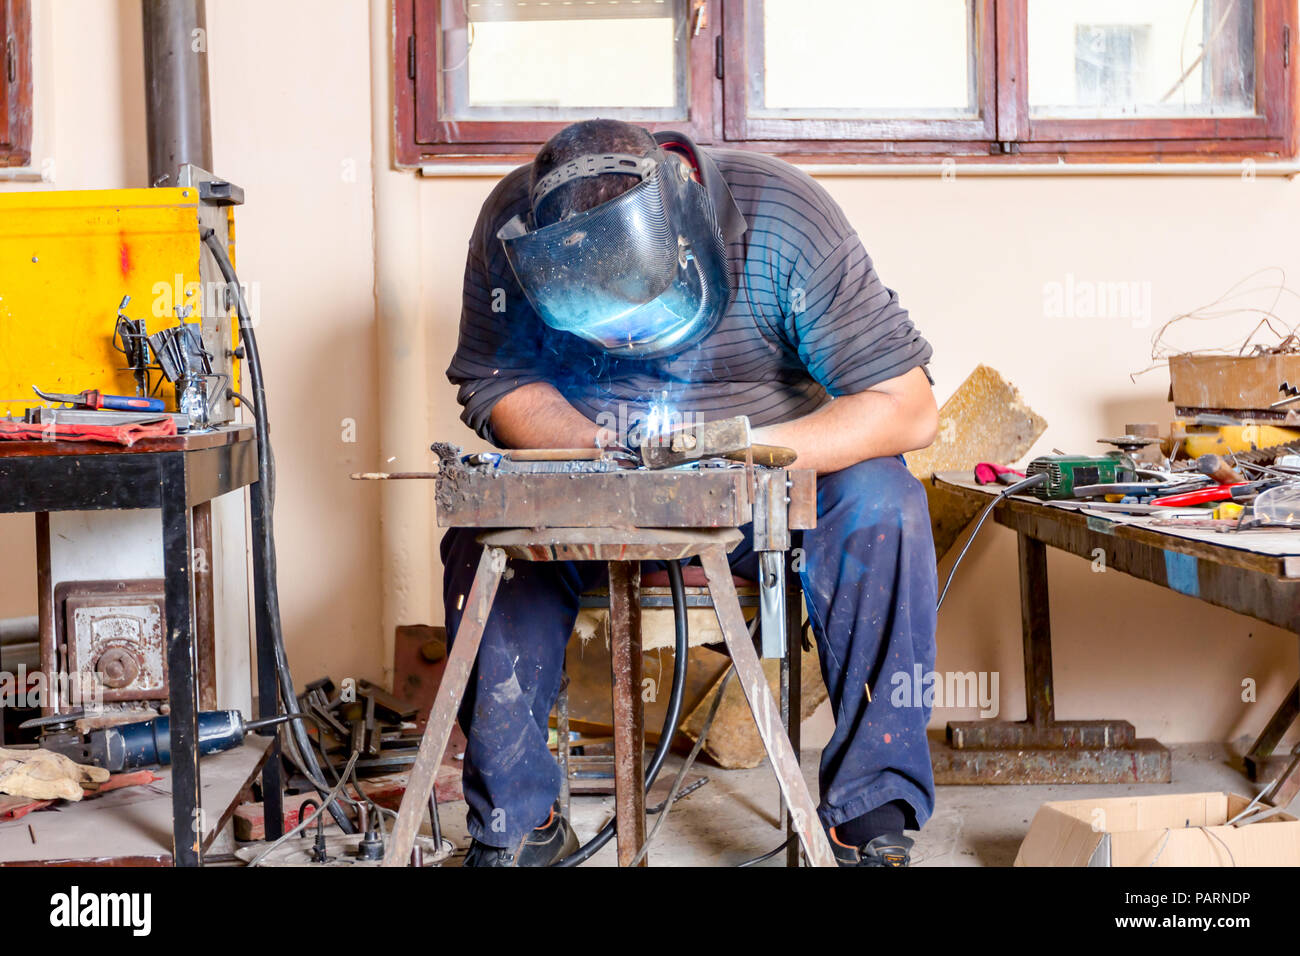 Sculptor is using arc welding to assembly metal sculpture barehanded with protective mask. Stock Photo